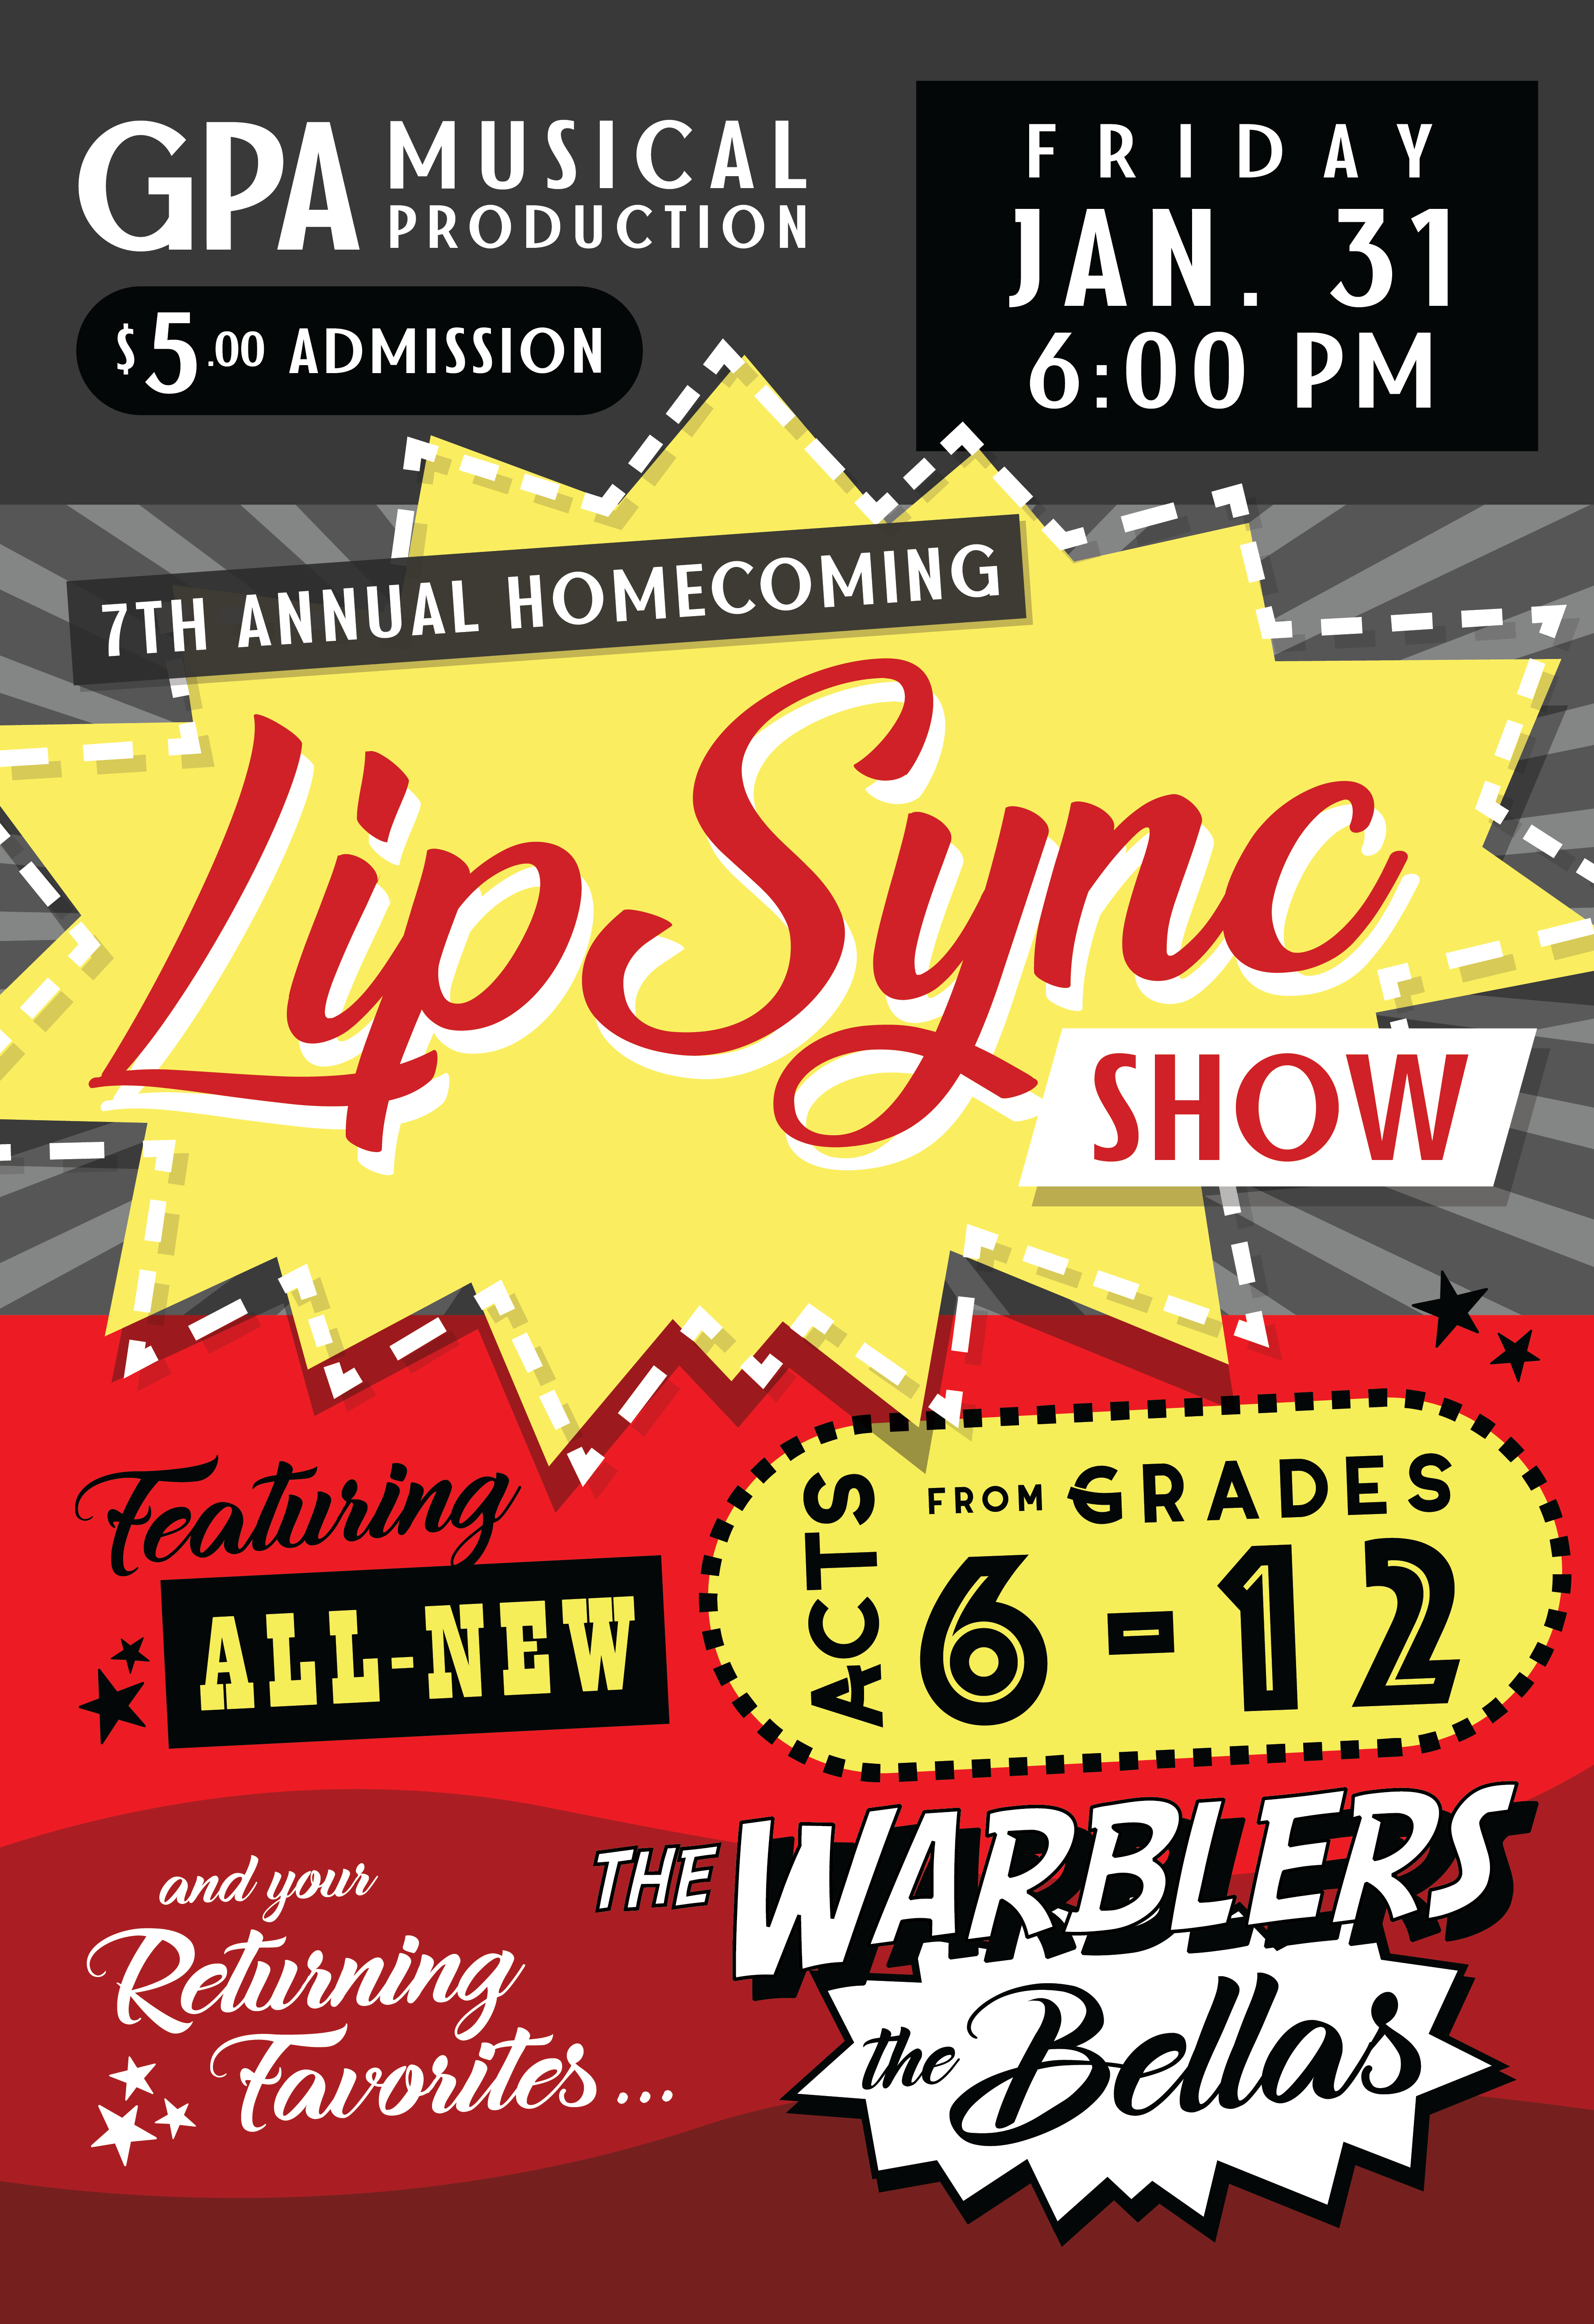 GPA Musical Production Presents 7th Annual Homecoming Lip Sync Show